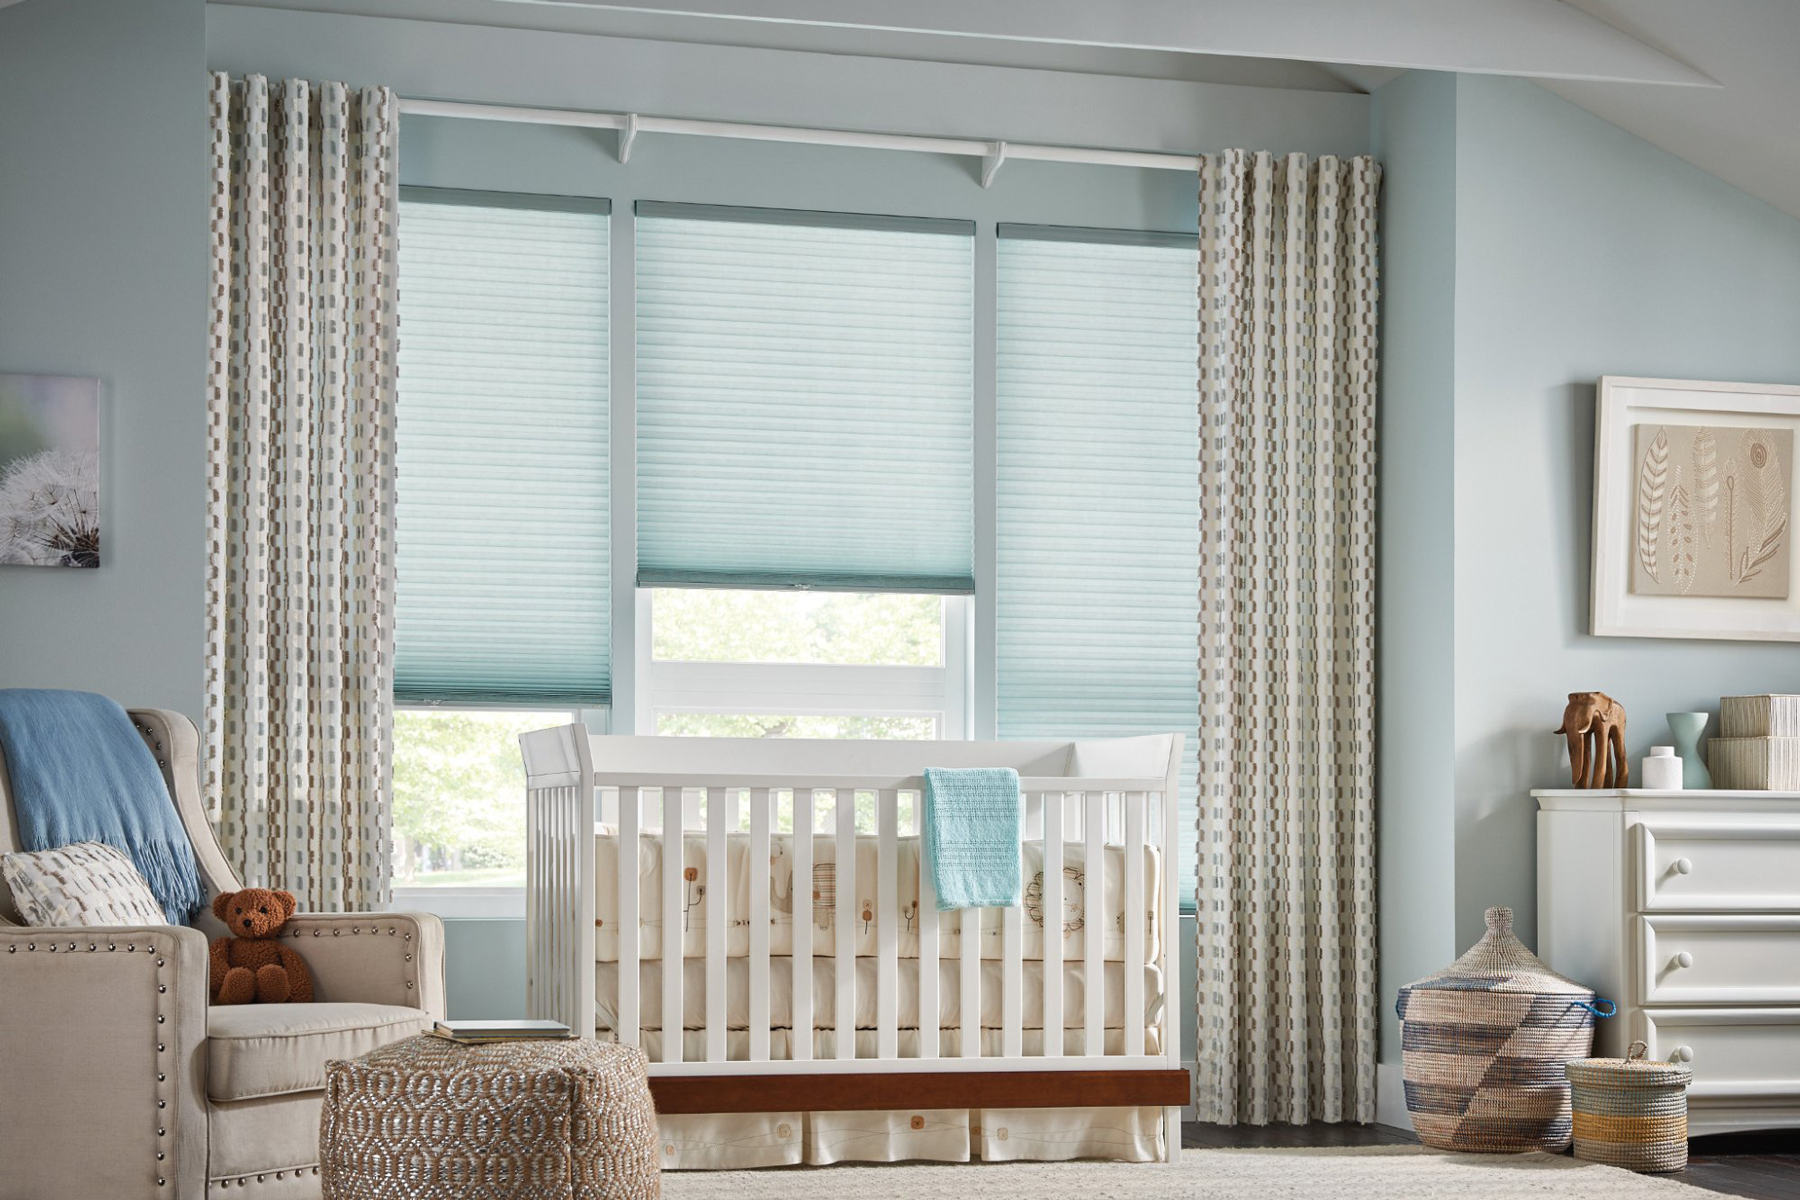 crafty ideas lovely stores wood design windows decorating near inspiration curtains blind and me blinds with